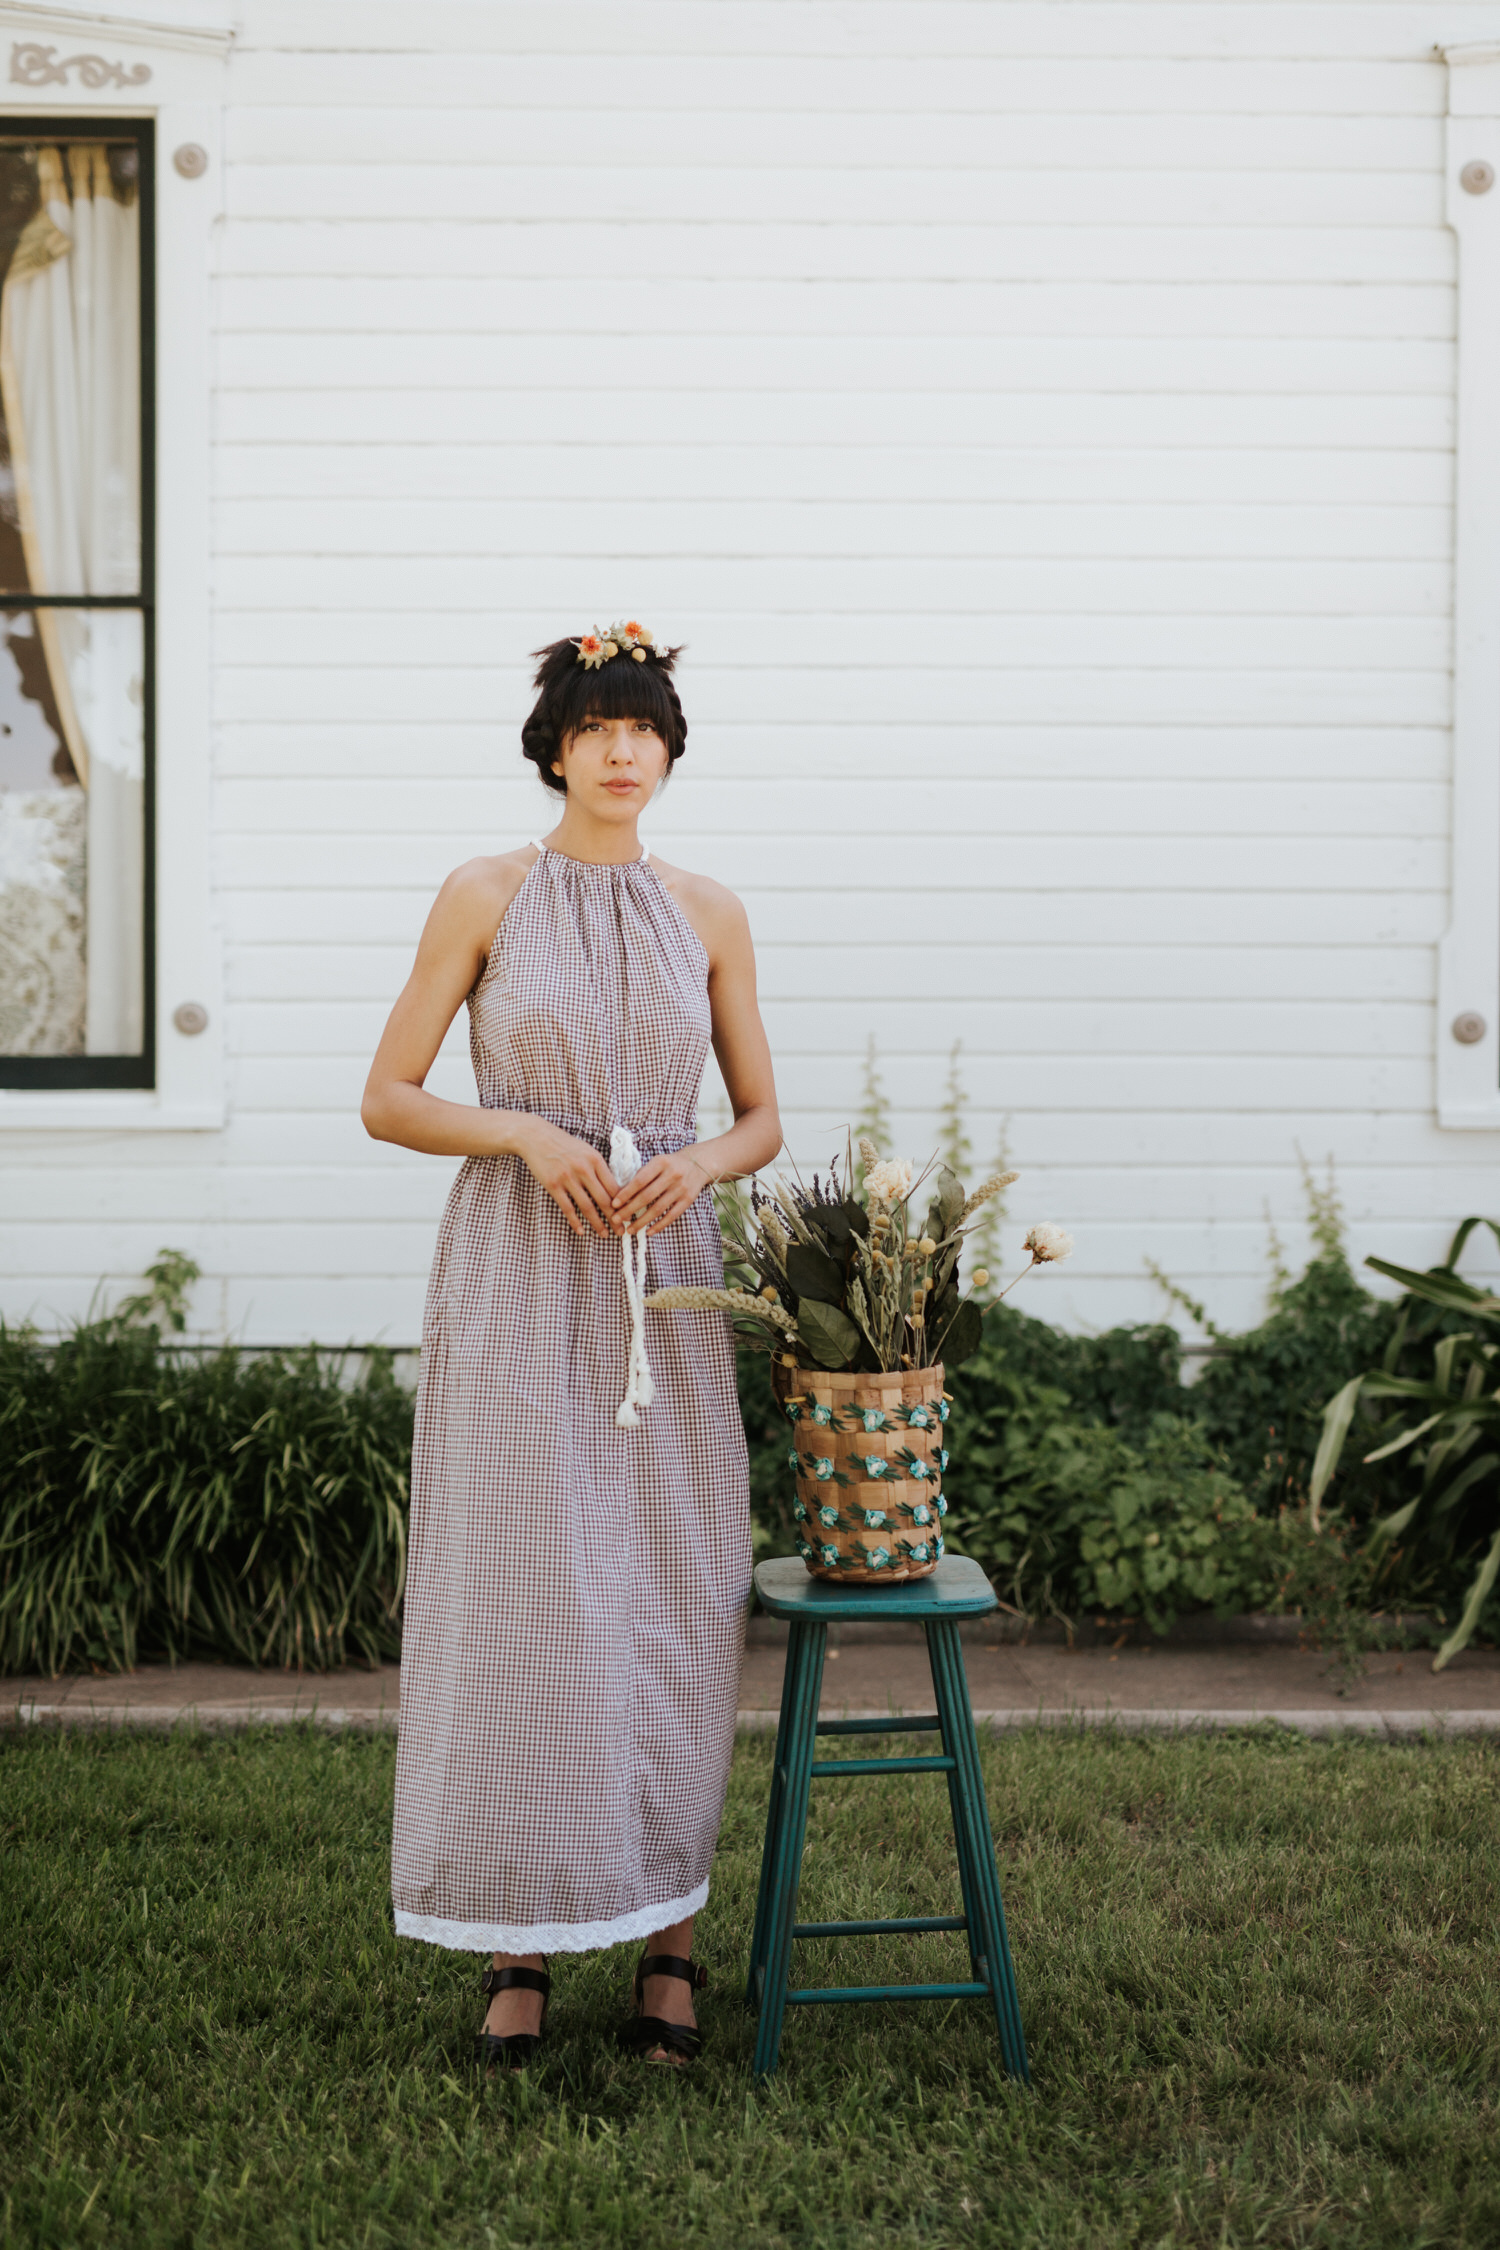 Woman in Rat Des Champs vintage dress with plant in basket